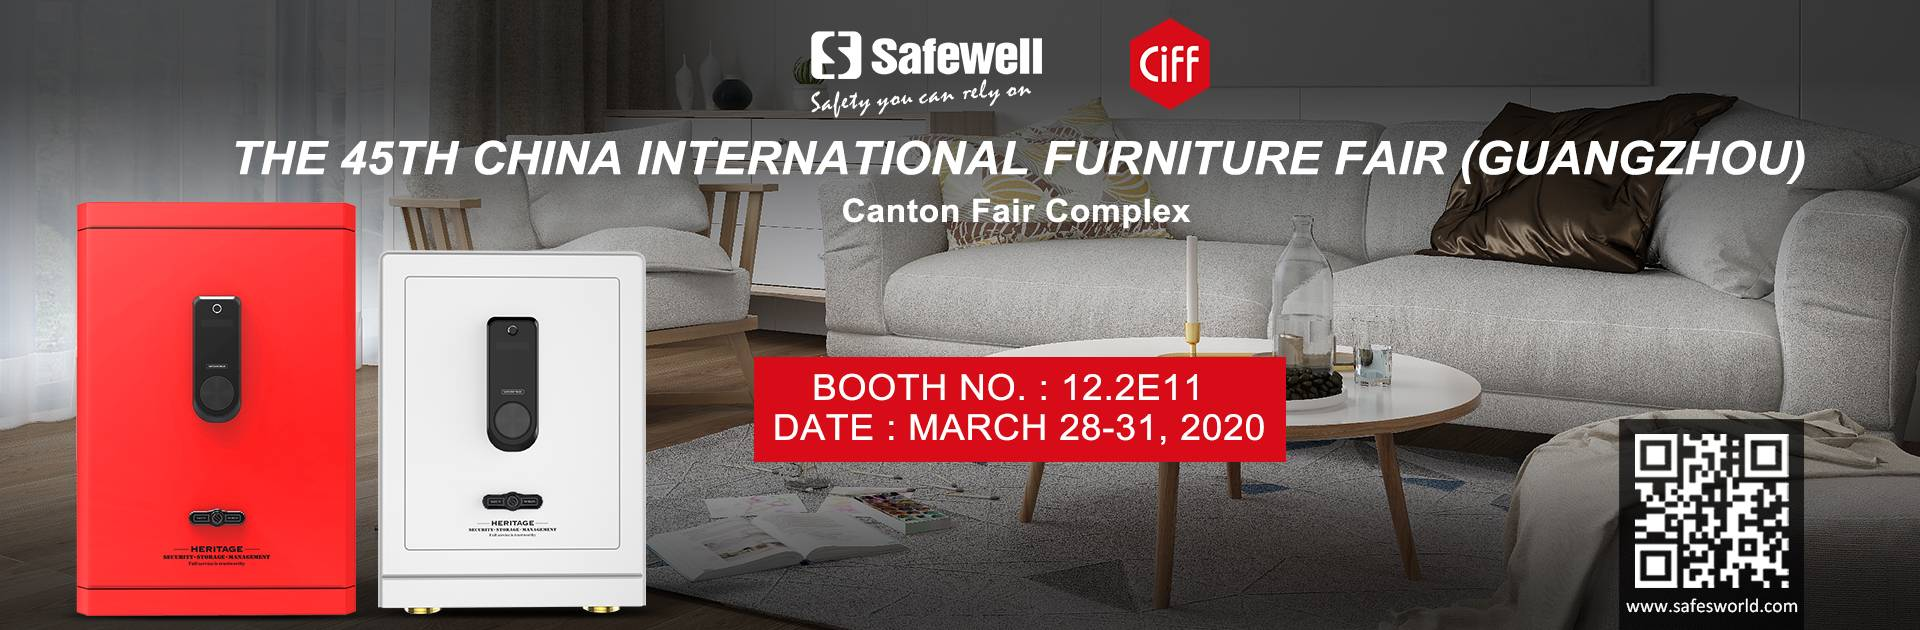 EISENWARENMESSE AND CIFF – SAFEWELL SAFE FAIR